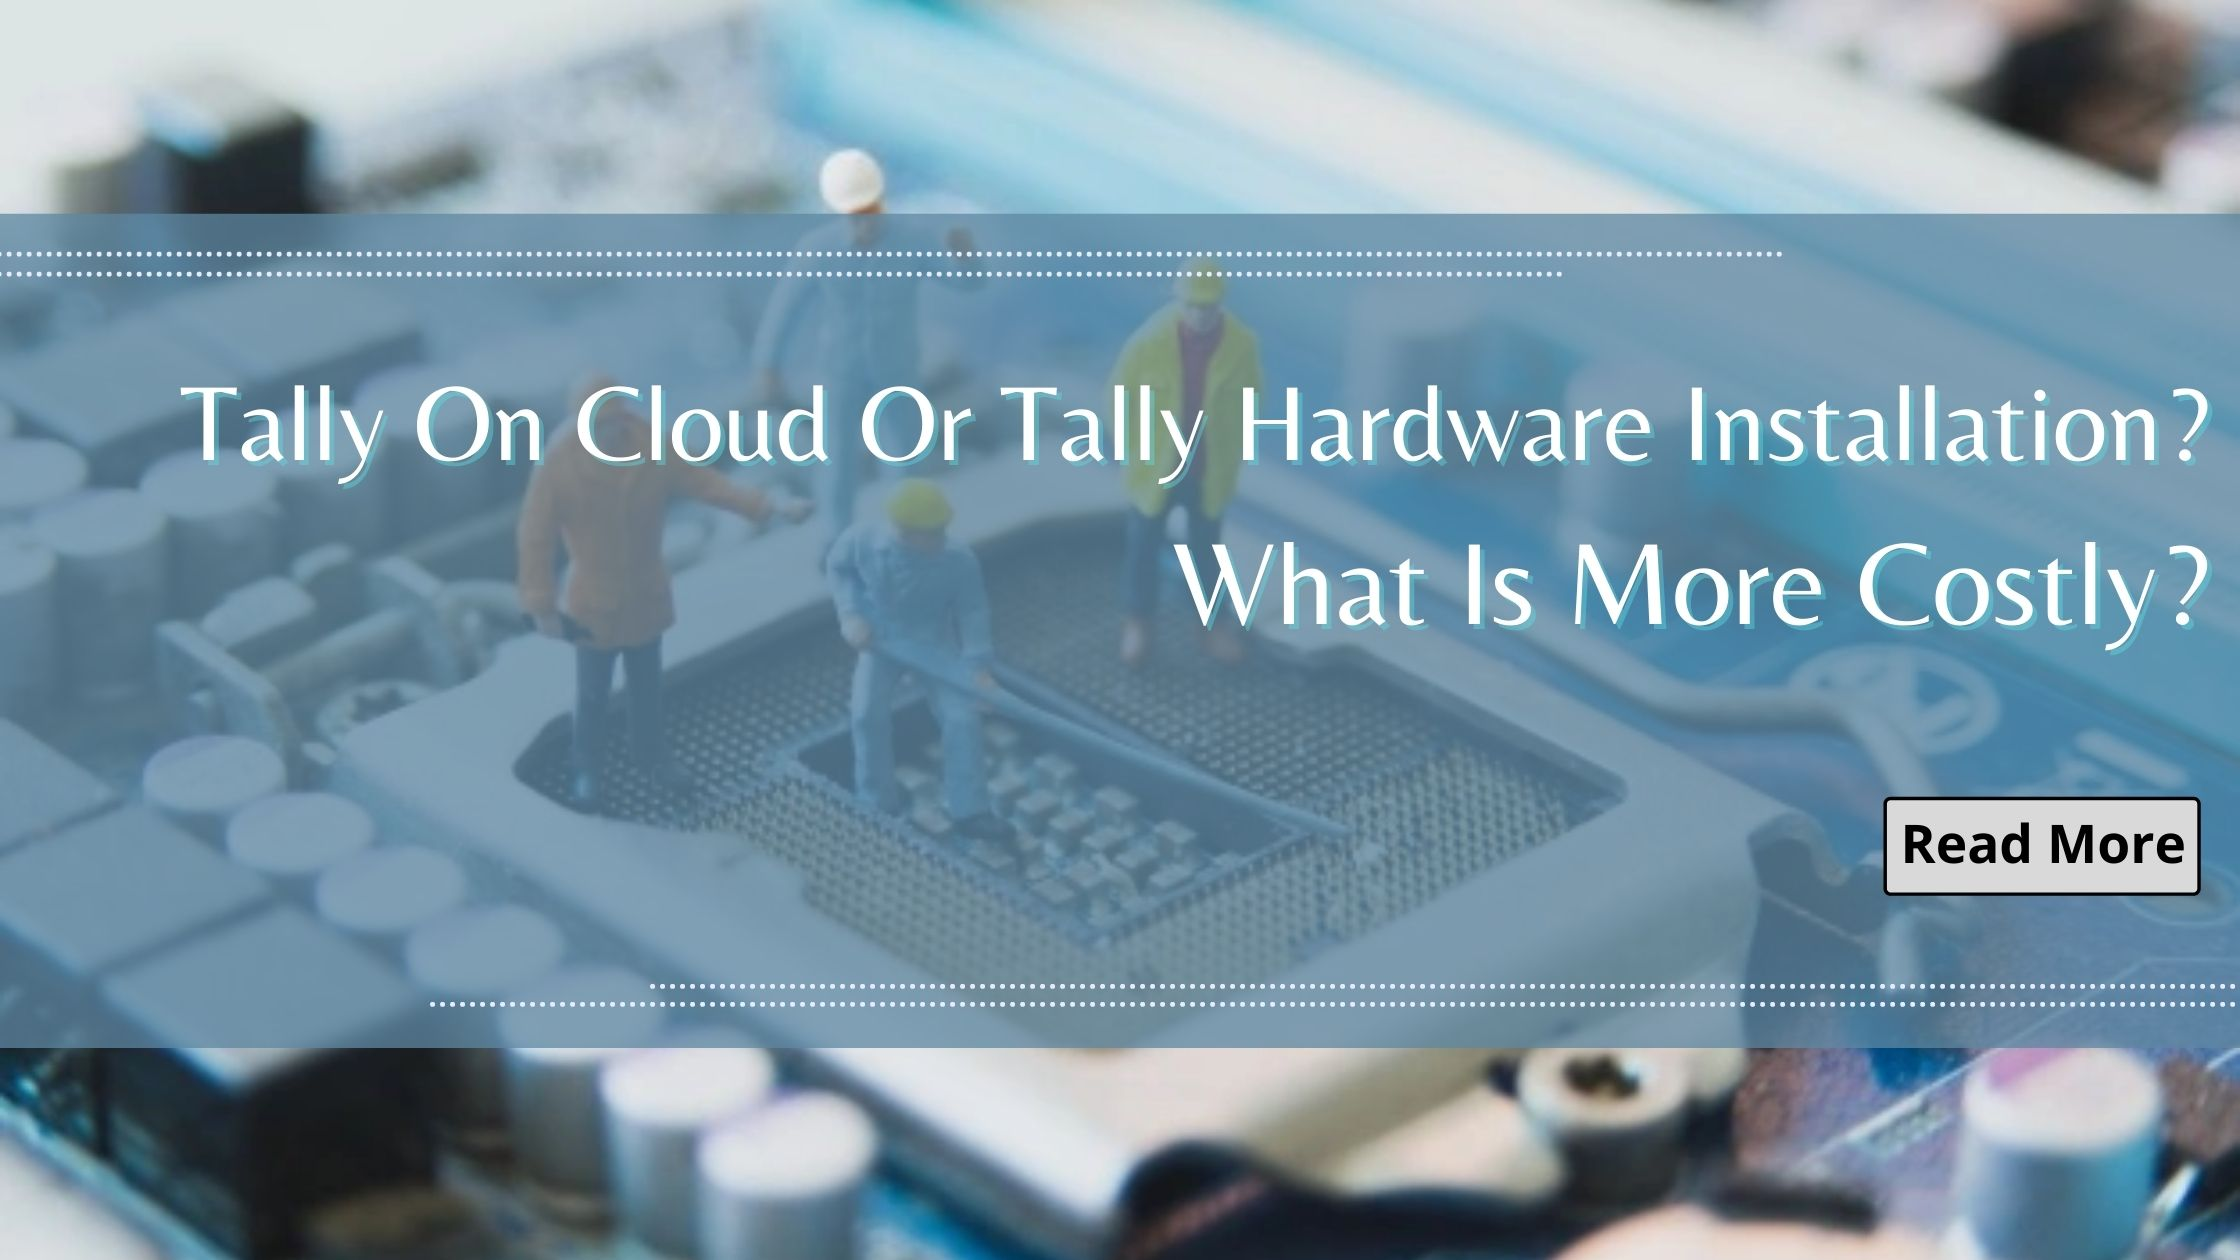 Tally On Cloud Or Hardware Installation